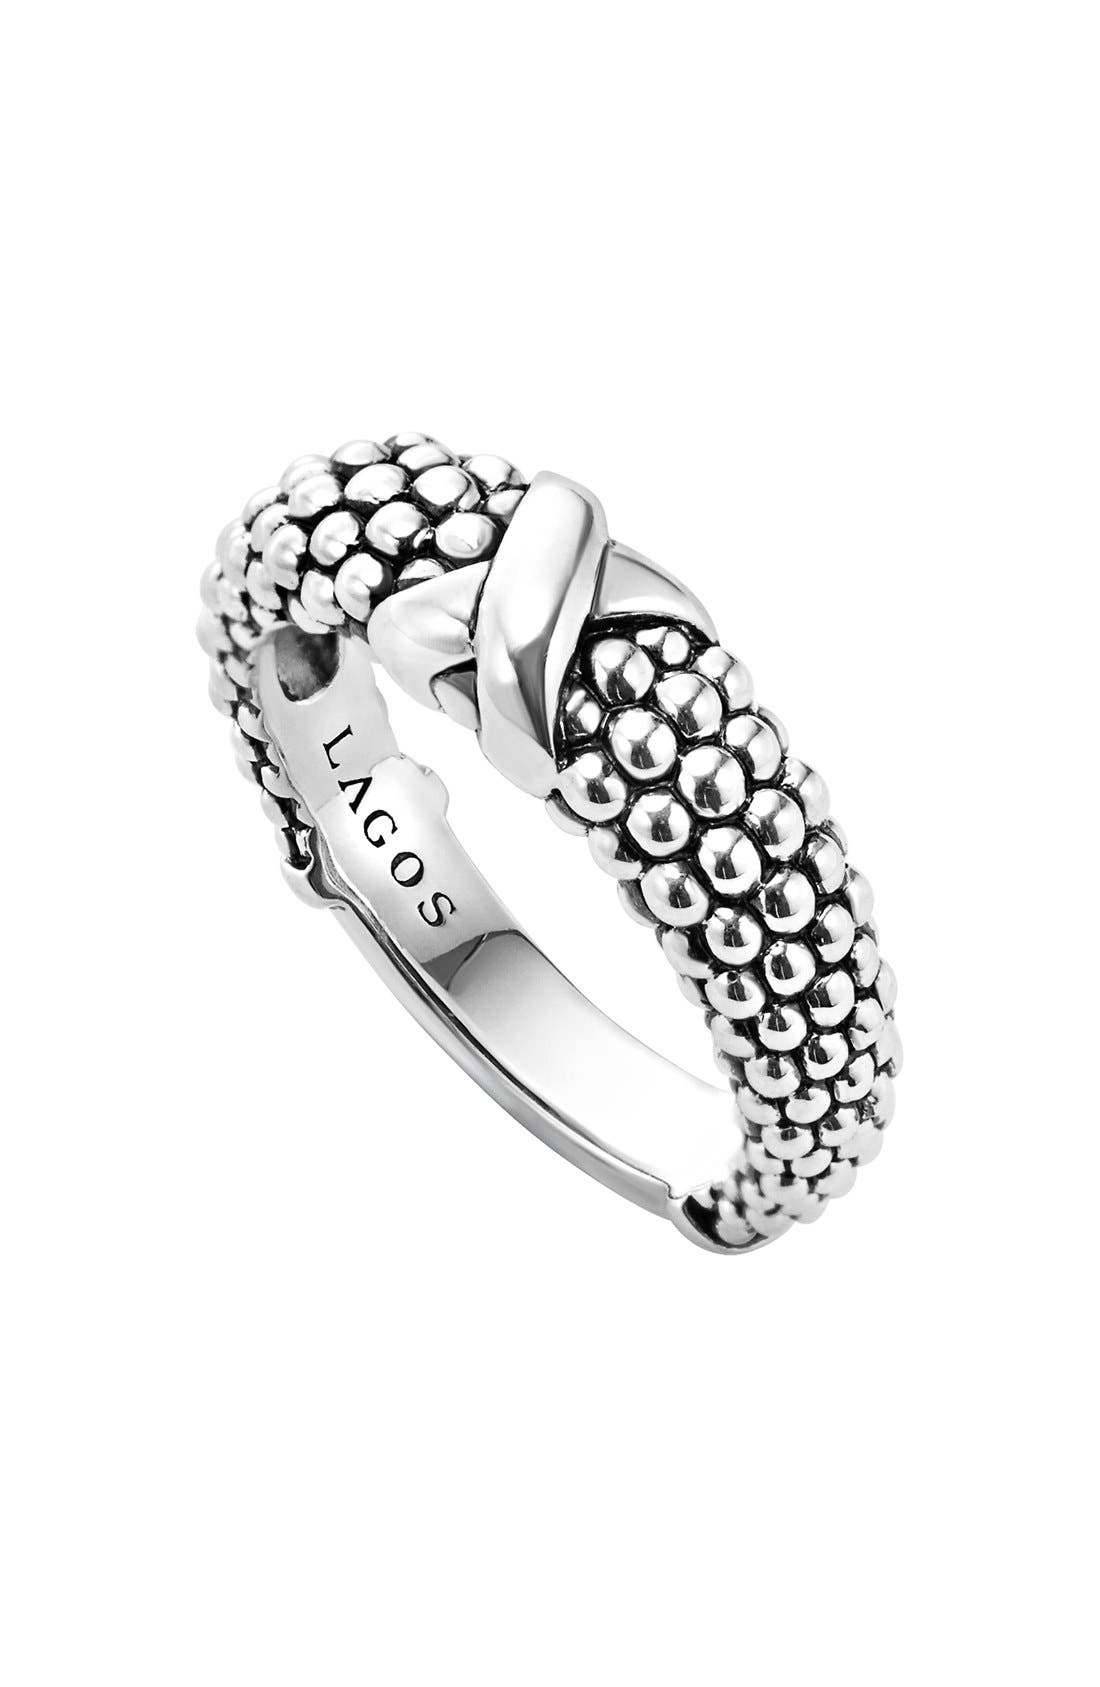 LAGOS 'Signature Caviar' Ring